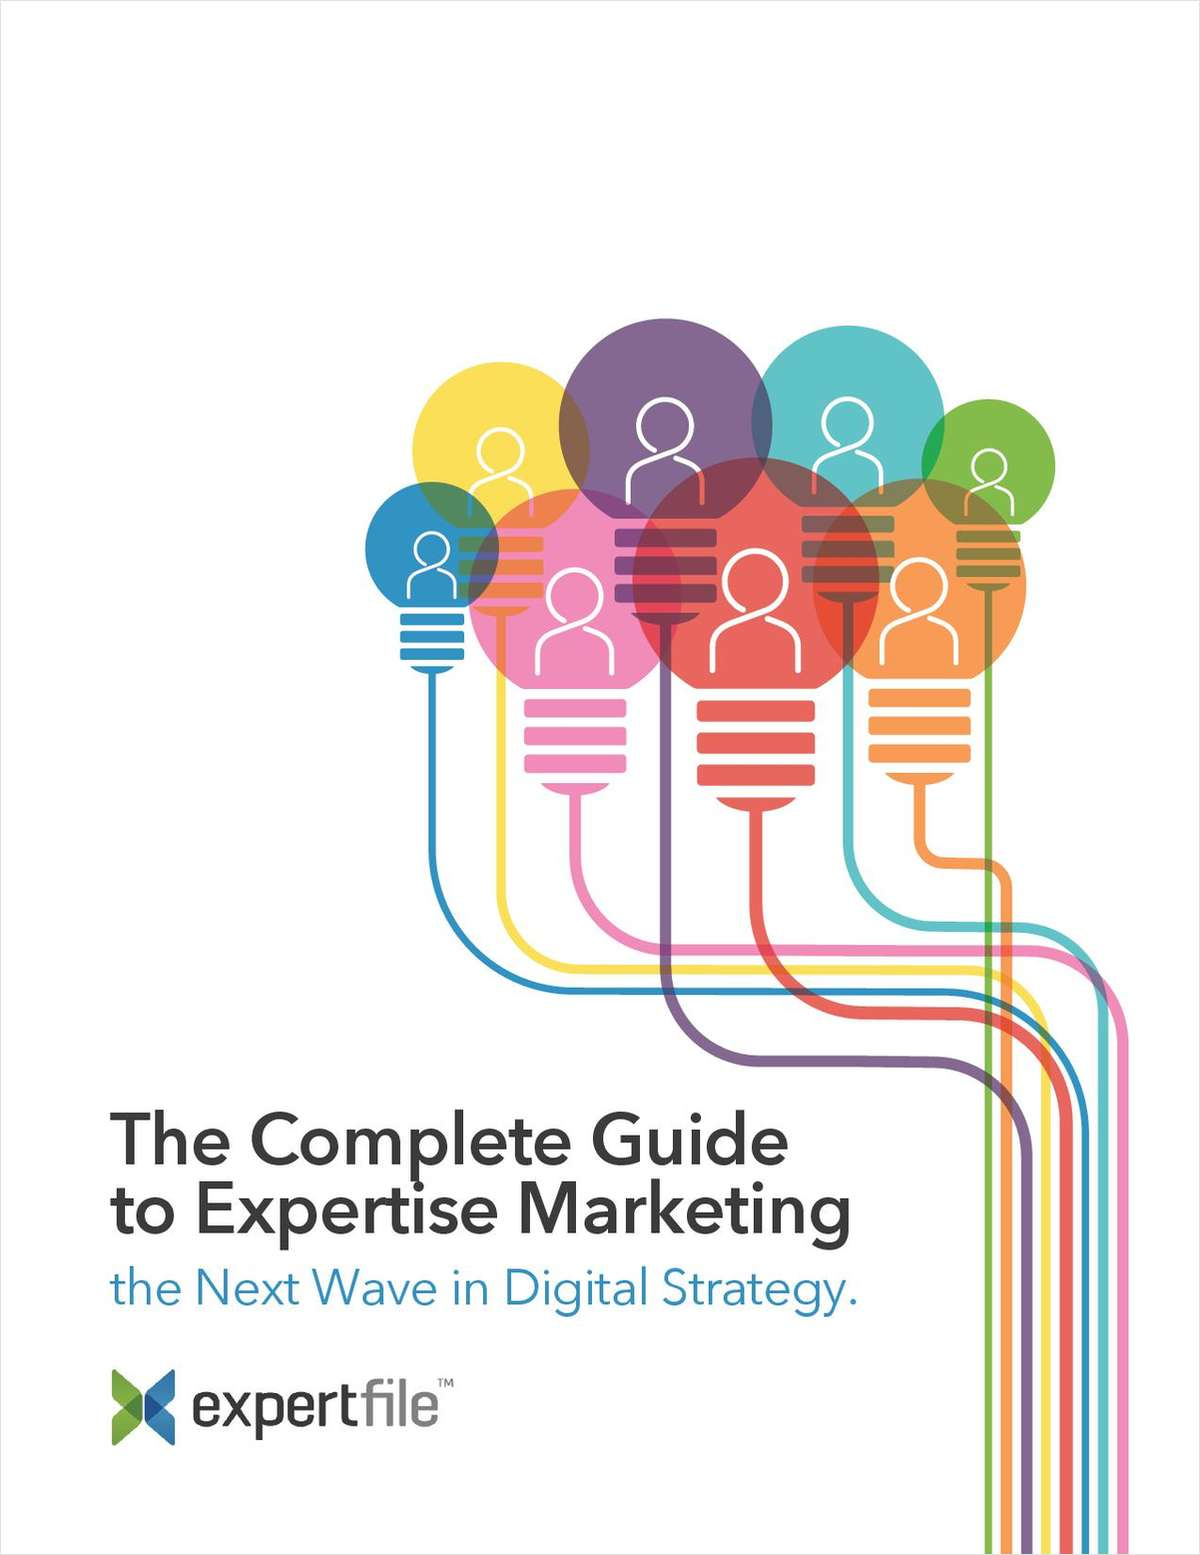 The Complete Guide To Expertise Marketing - the Next Wave in Digital Strategy.